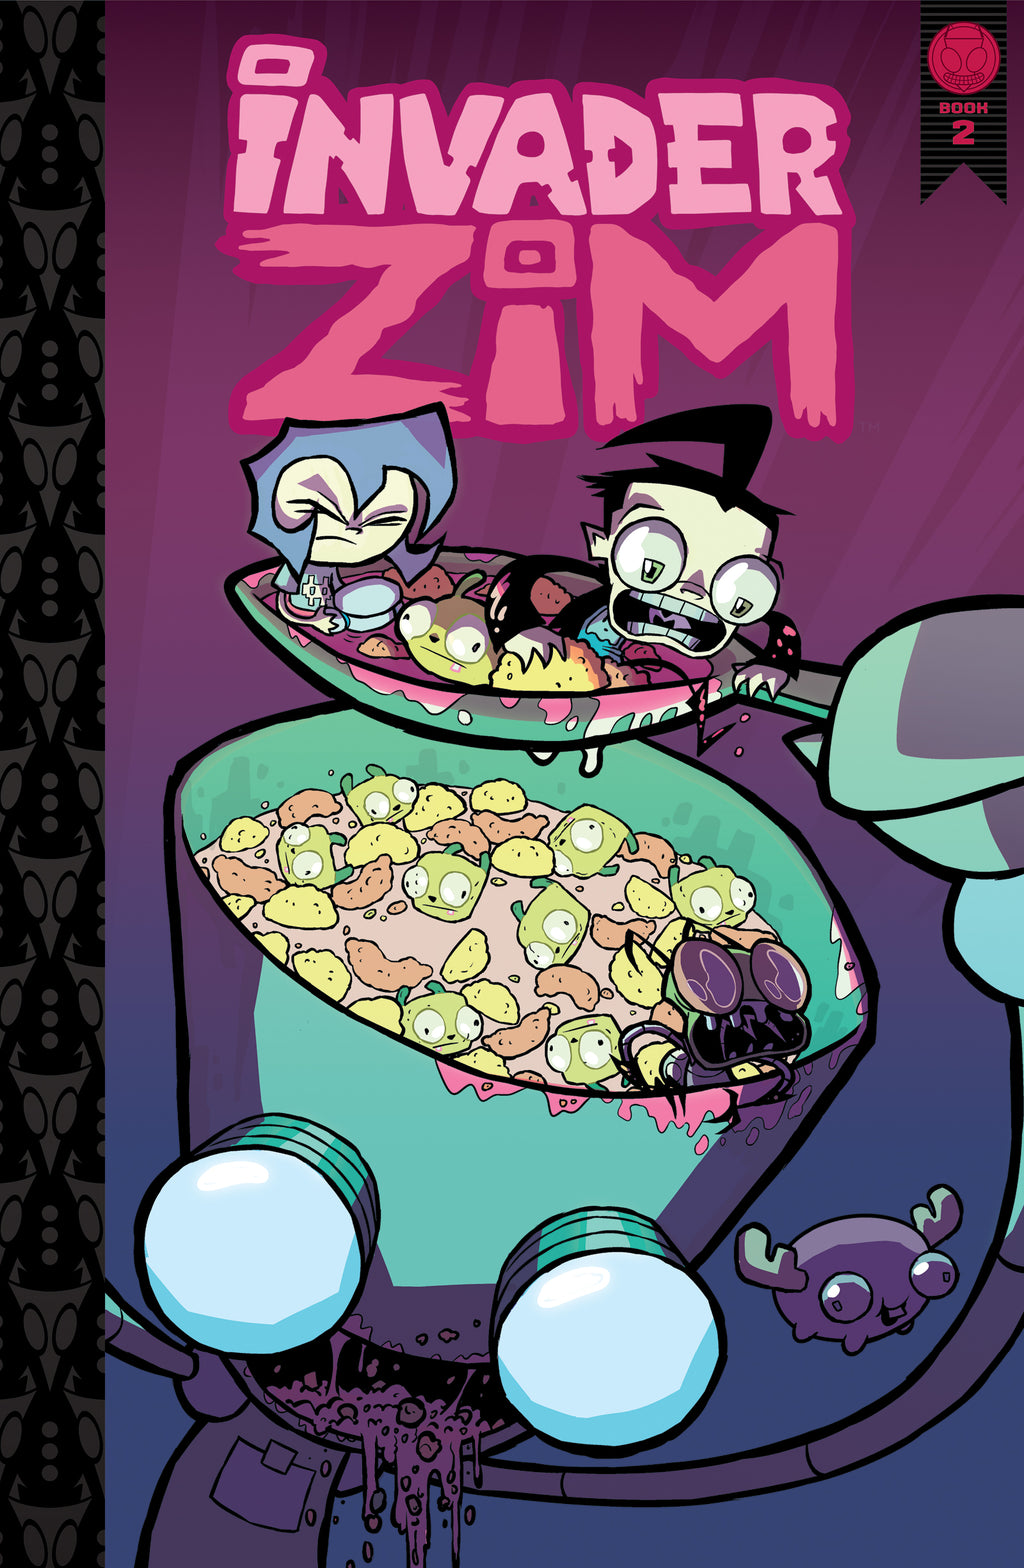 Invader Zim Hardcover Book 2